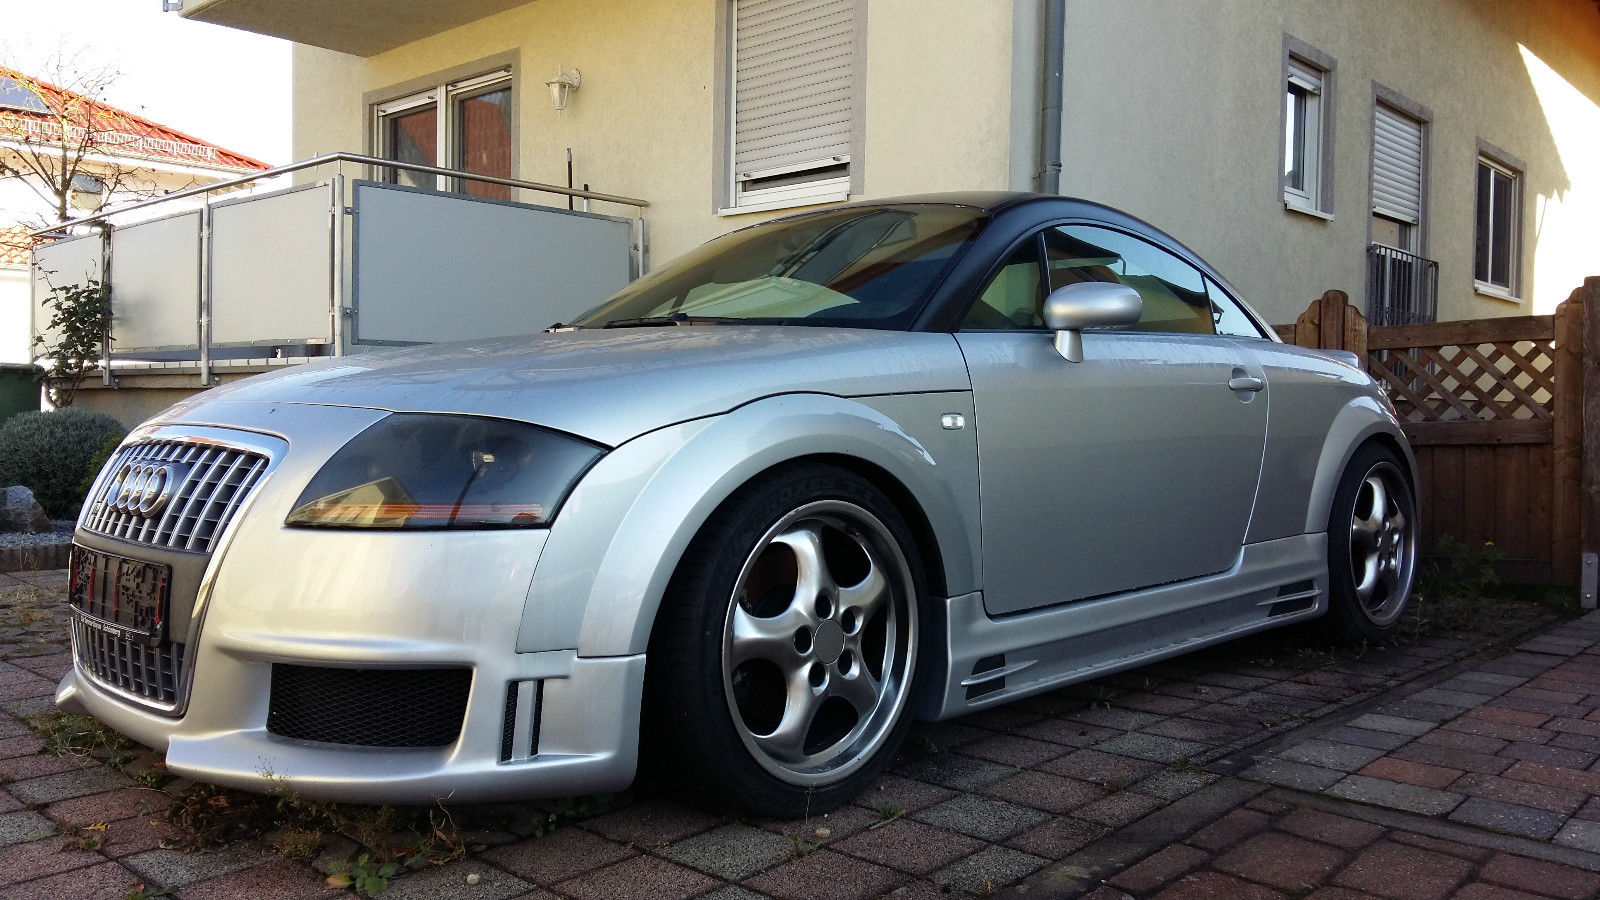 1999 audi tt 8n 1 8t tuning for sale. Black Bedroom Furniture Sets. Home Design Ideas